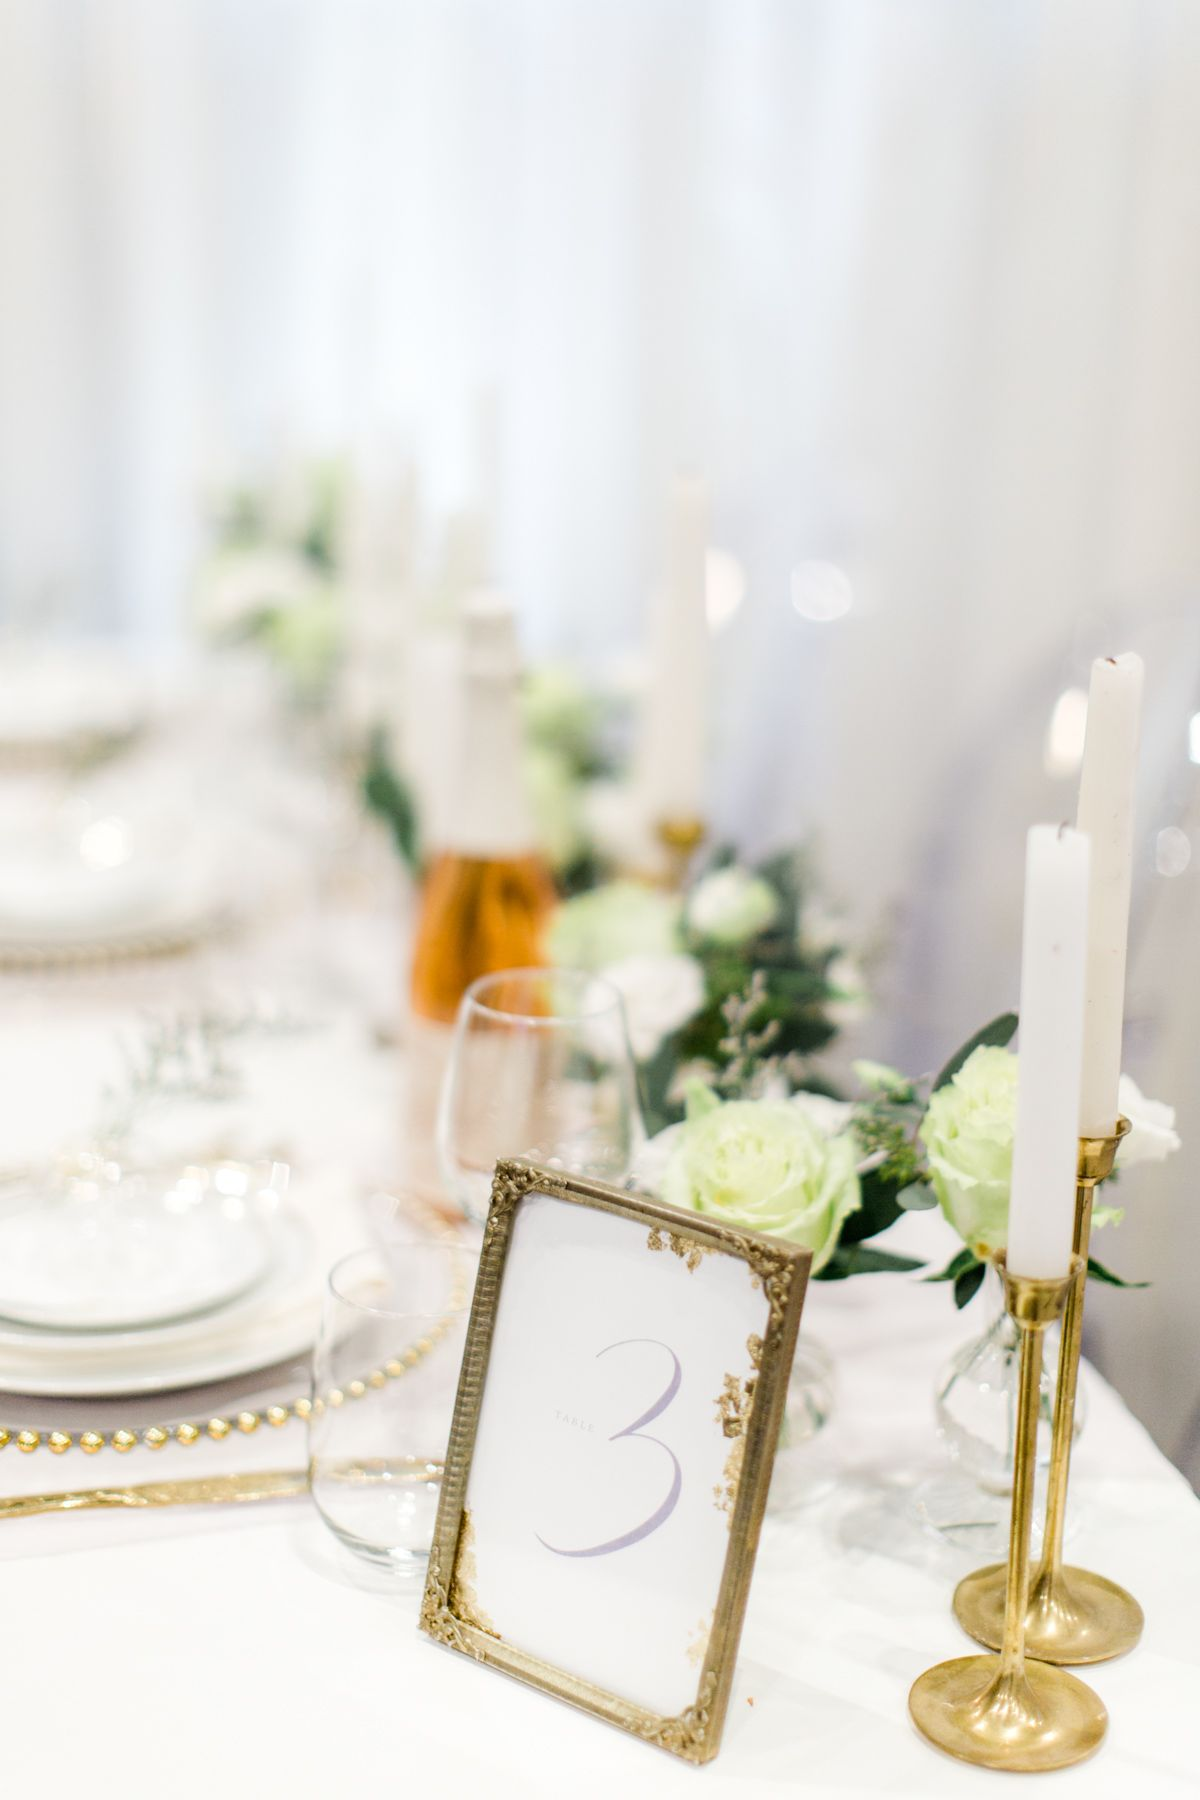 Wedding decor with ghost chairs  Brideus Wedding Show  via Elegant Productions  Modern Gold